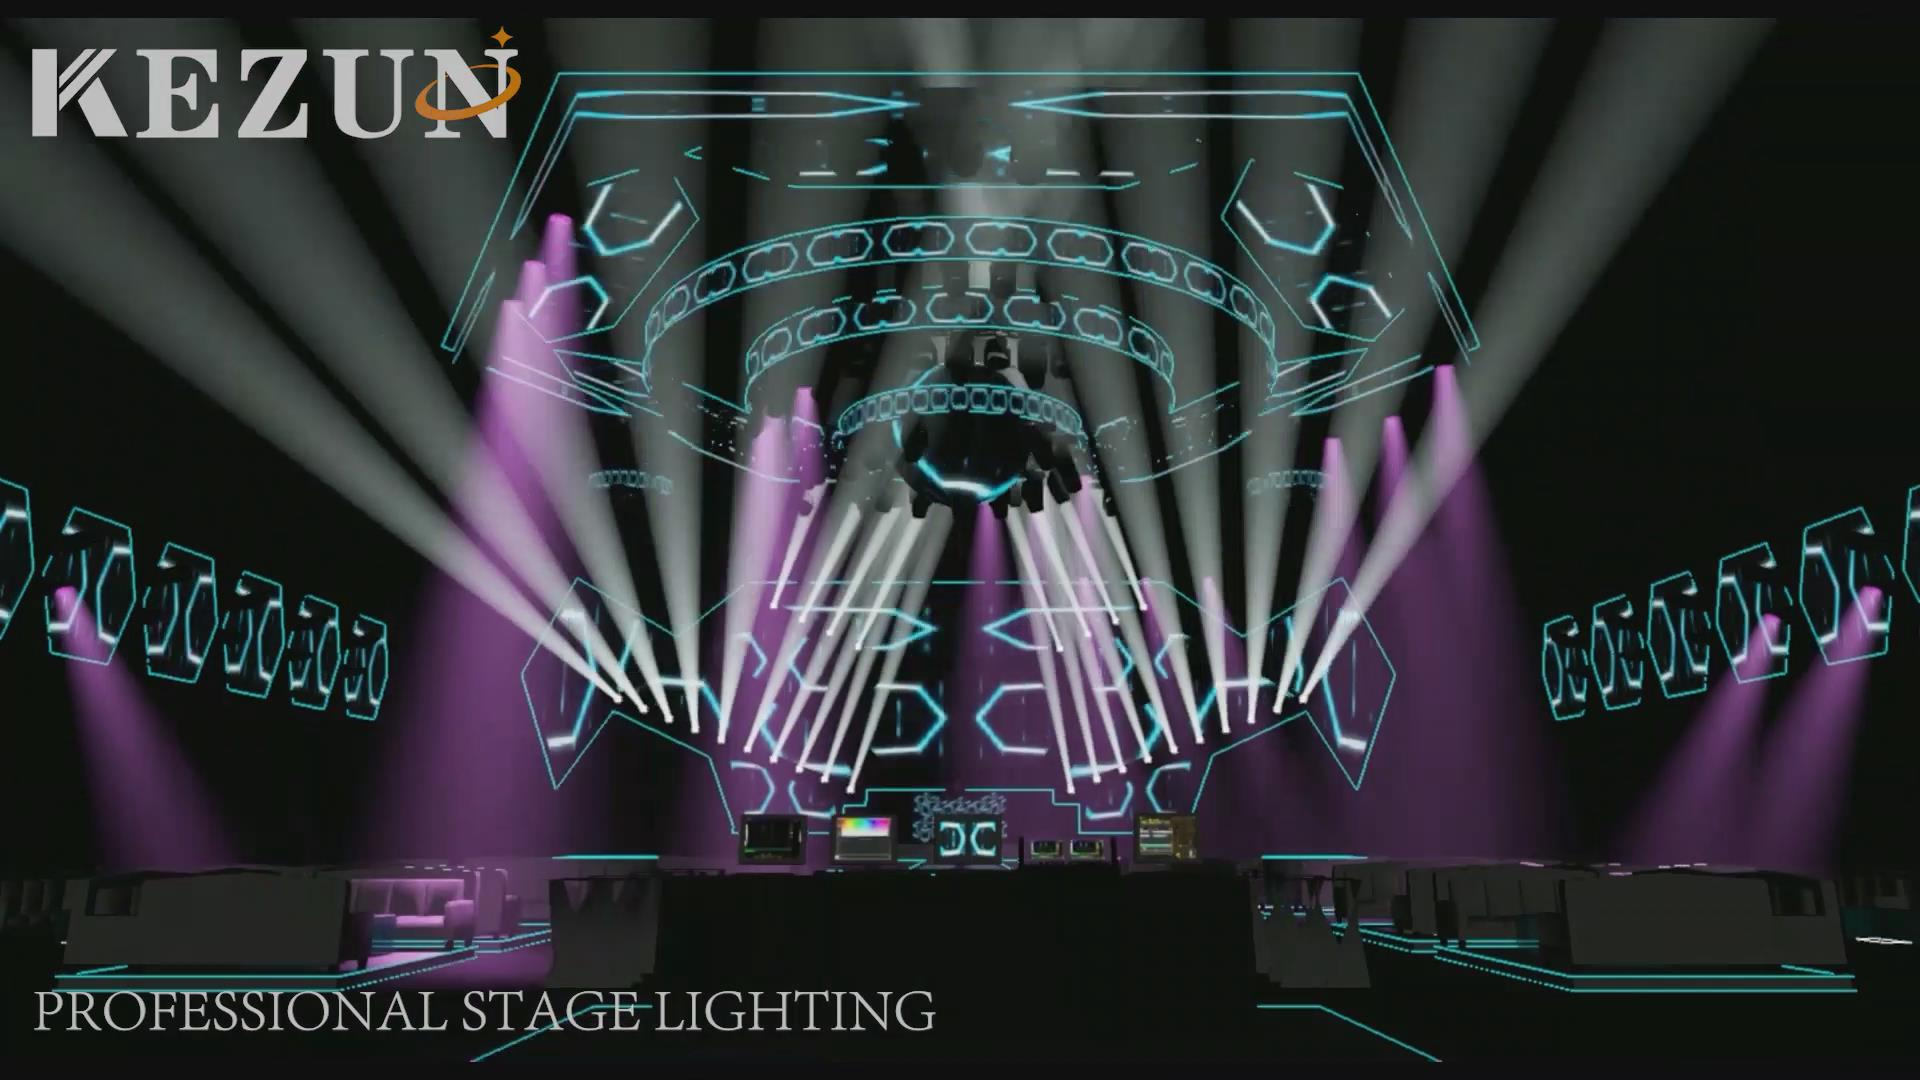 Recently project- 2019 Jan 6th light show performance